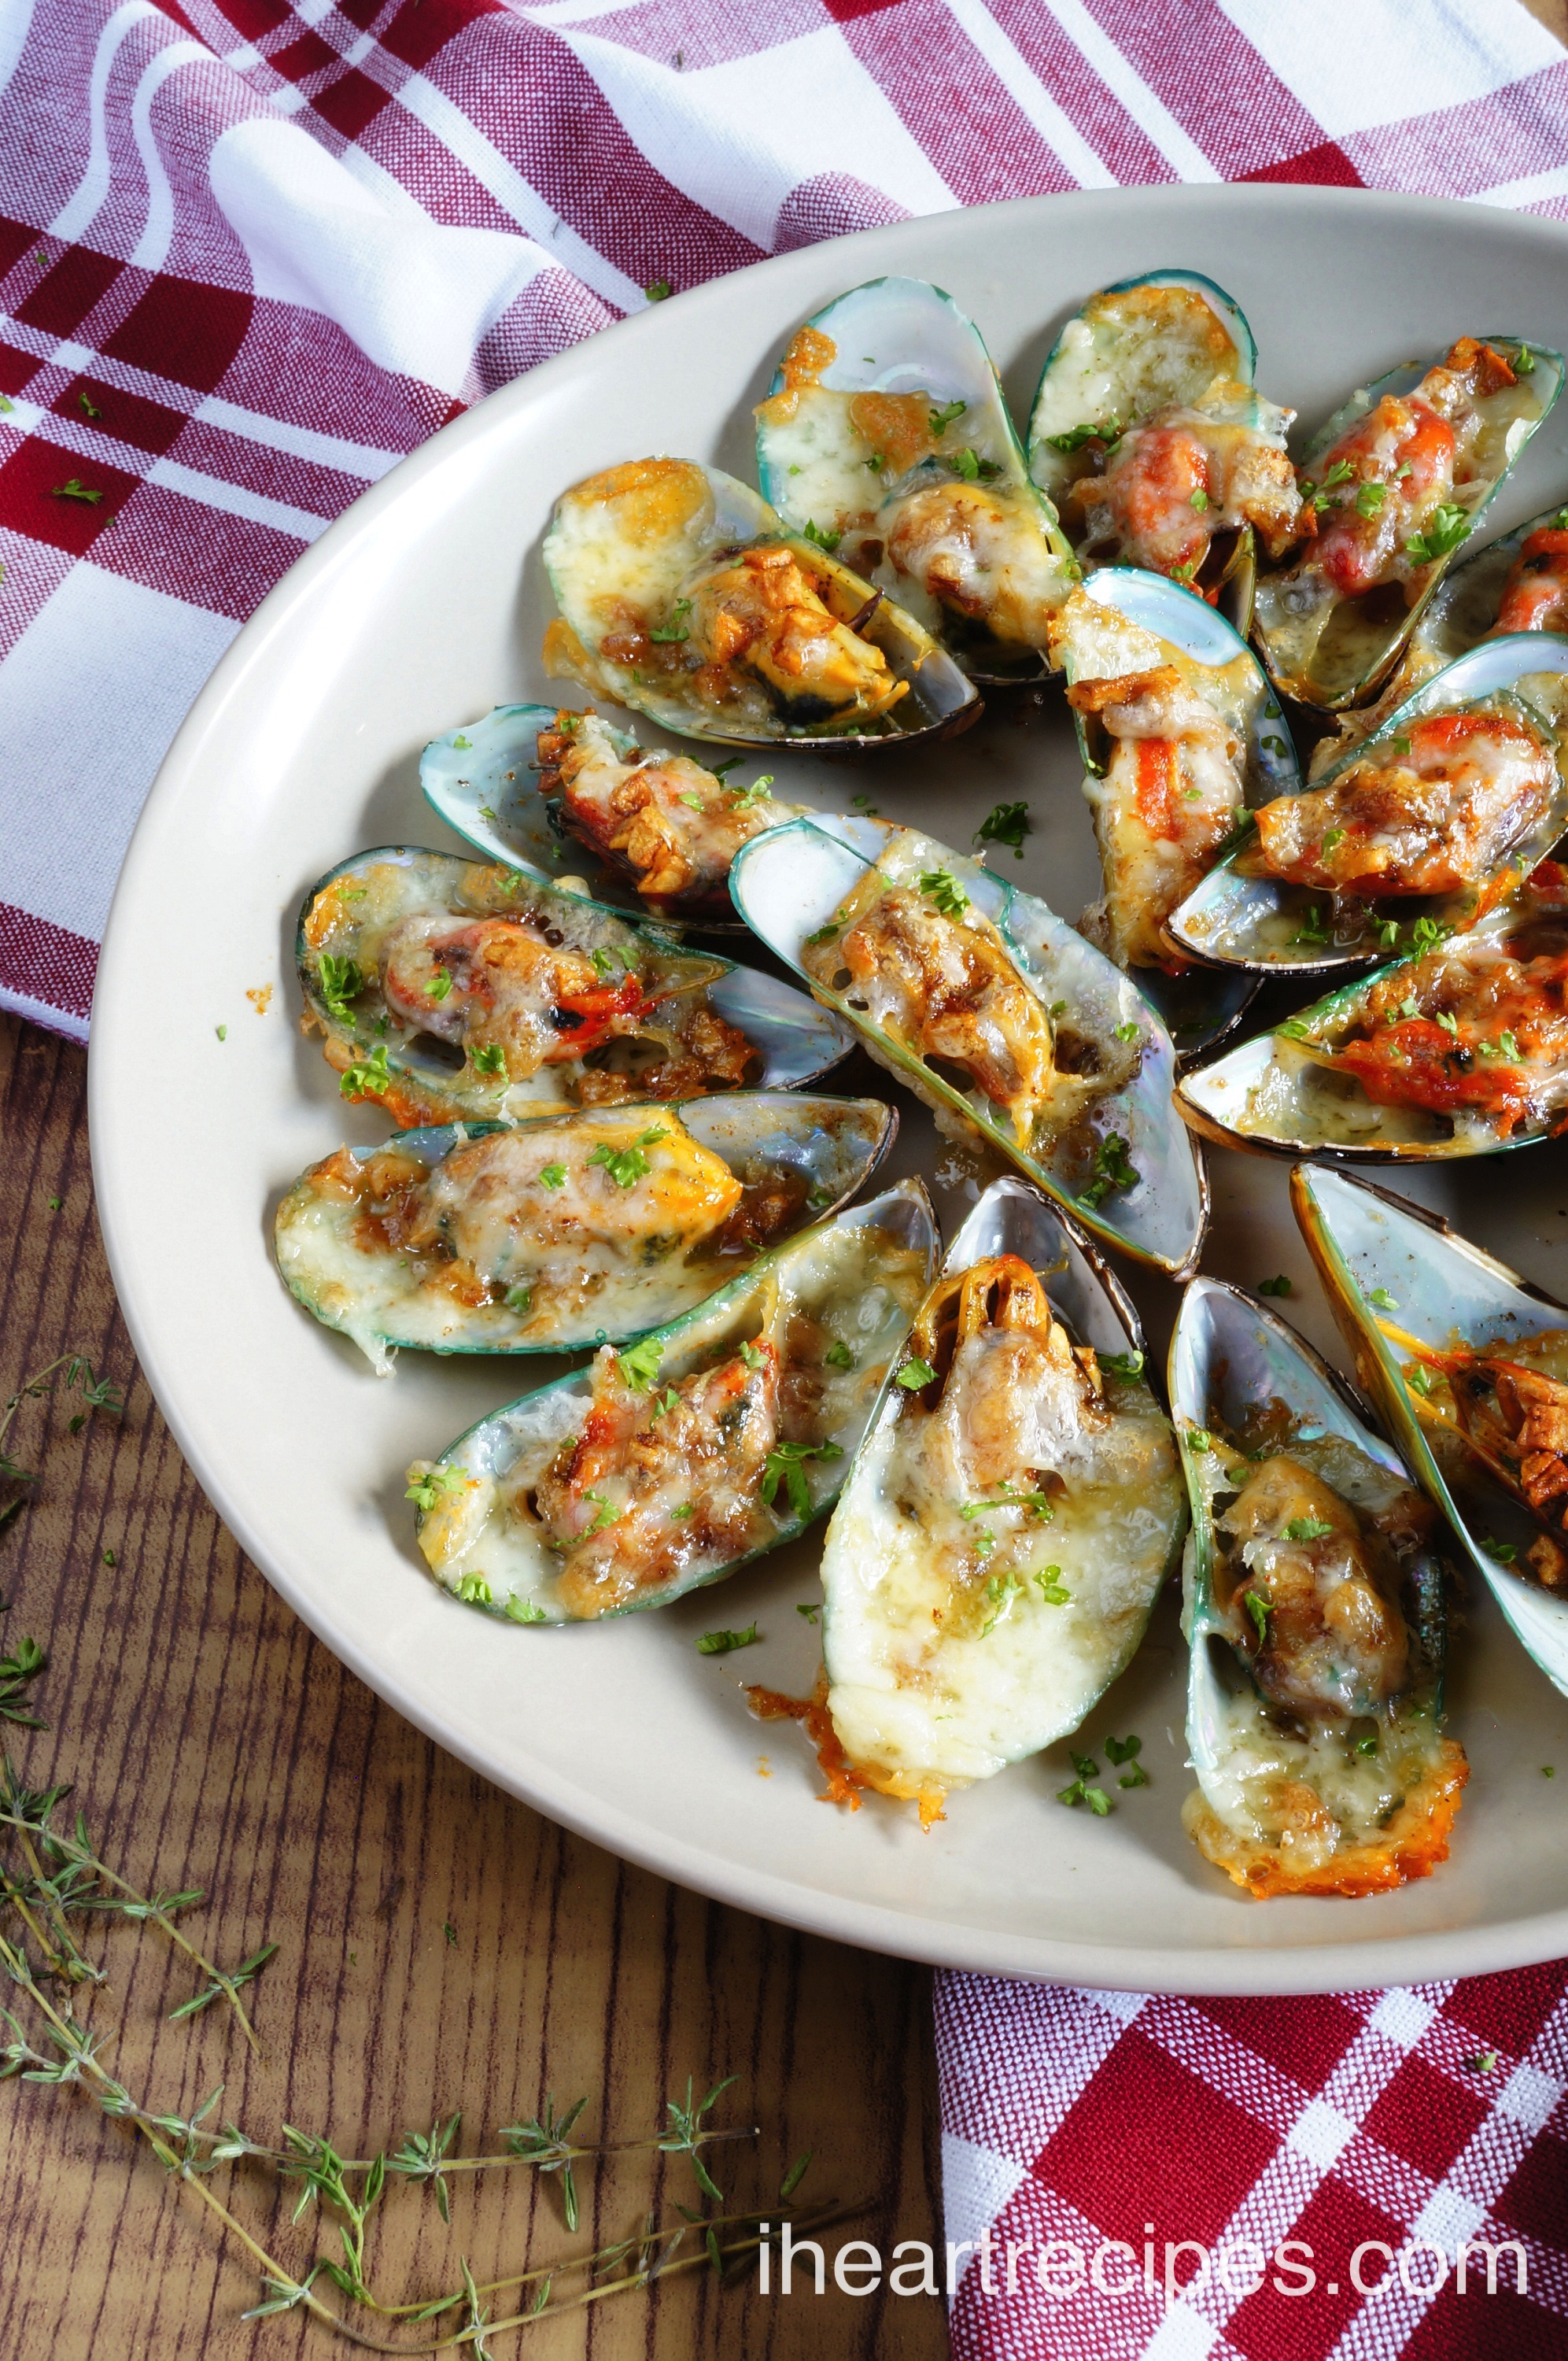 Minimal ingredients are needed for these mouth-watering Cheesy Garlic Mussels! Simple and elegant.